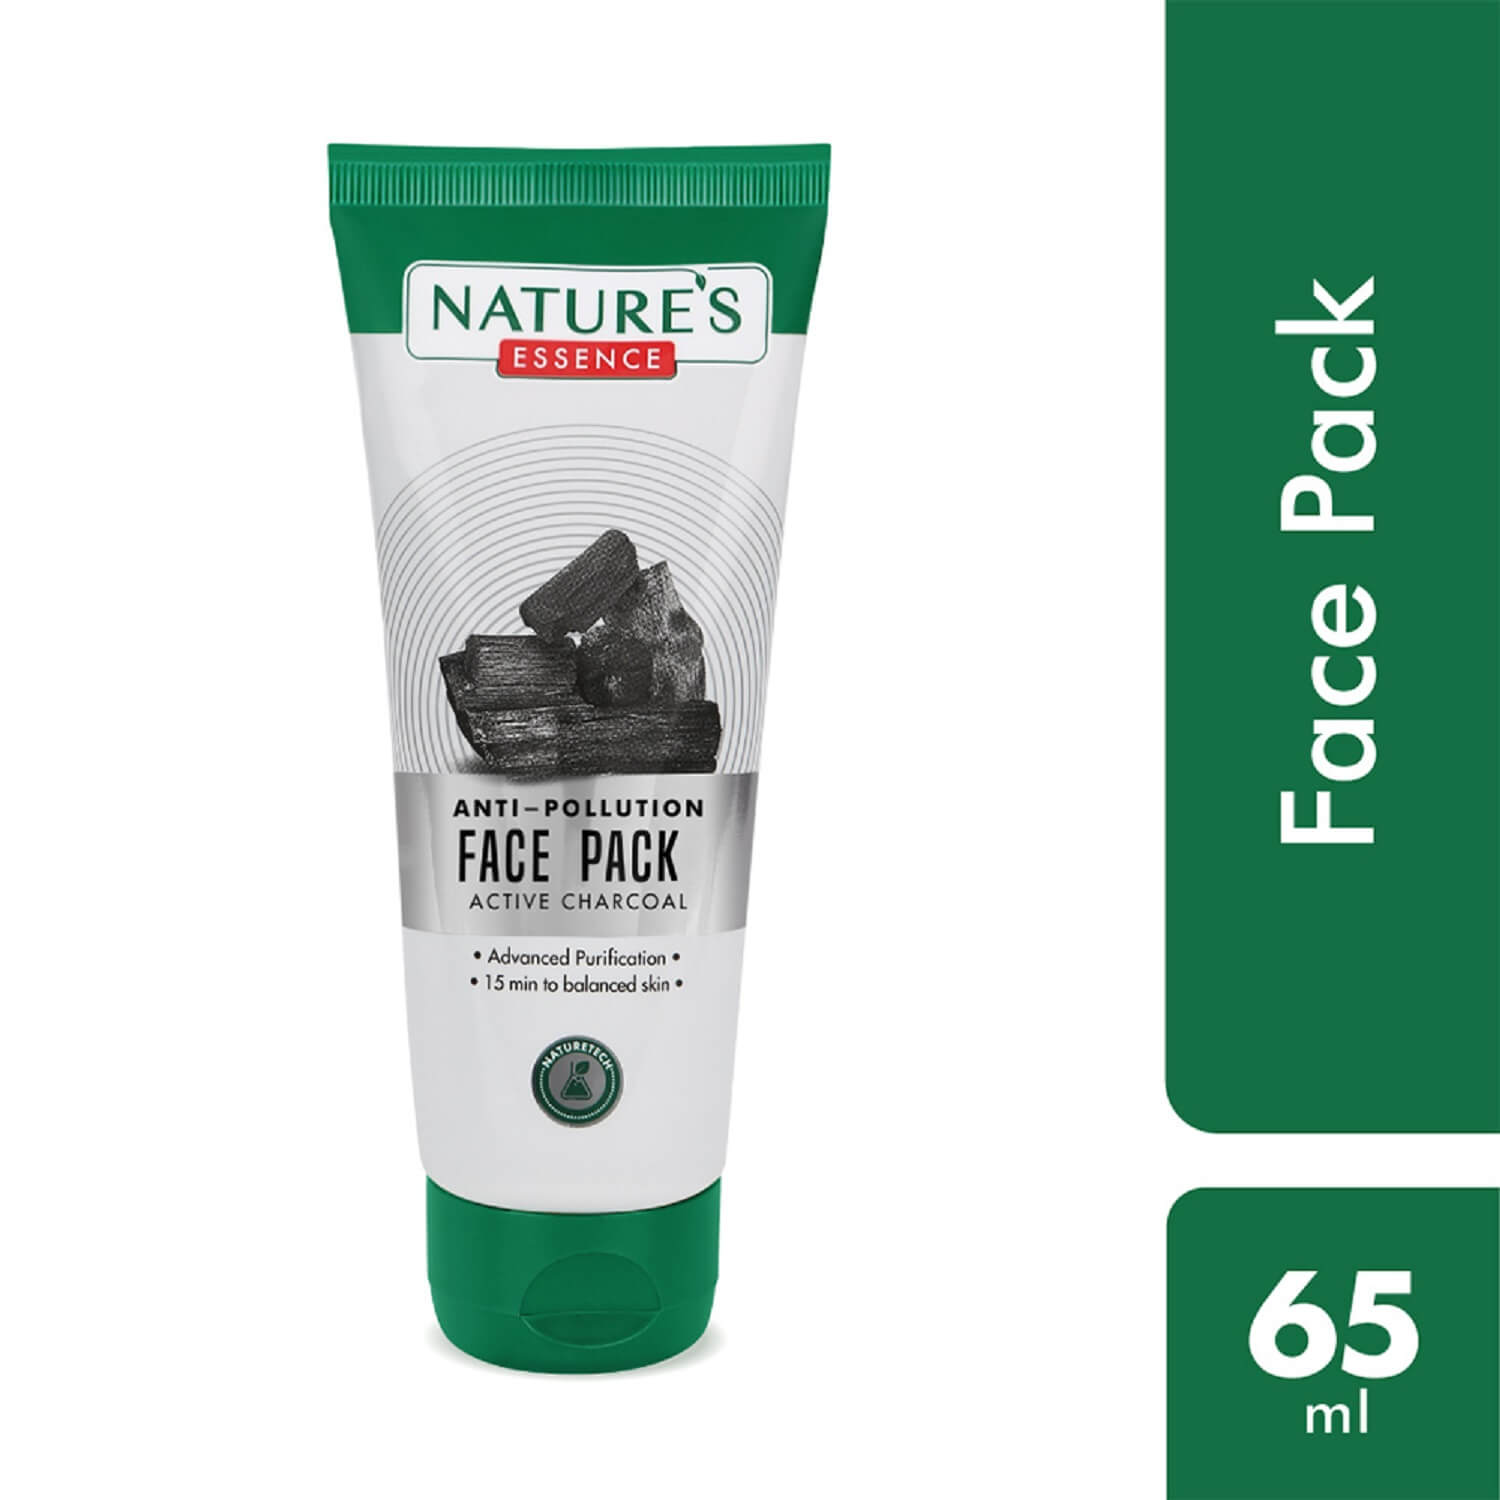 Active Charcoal Face Pack